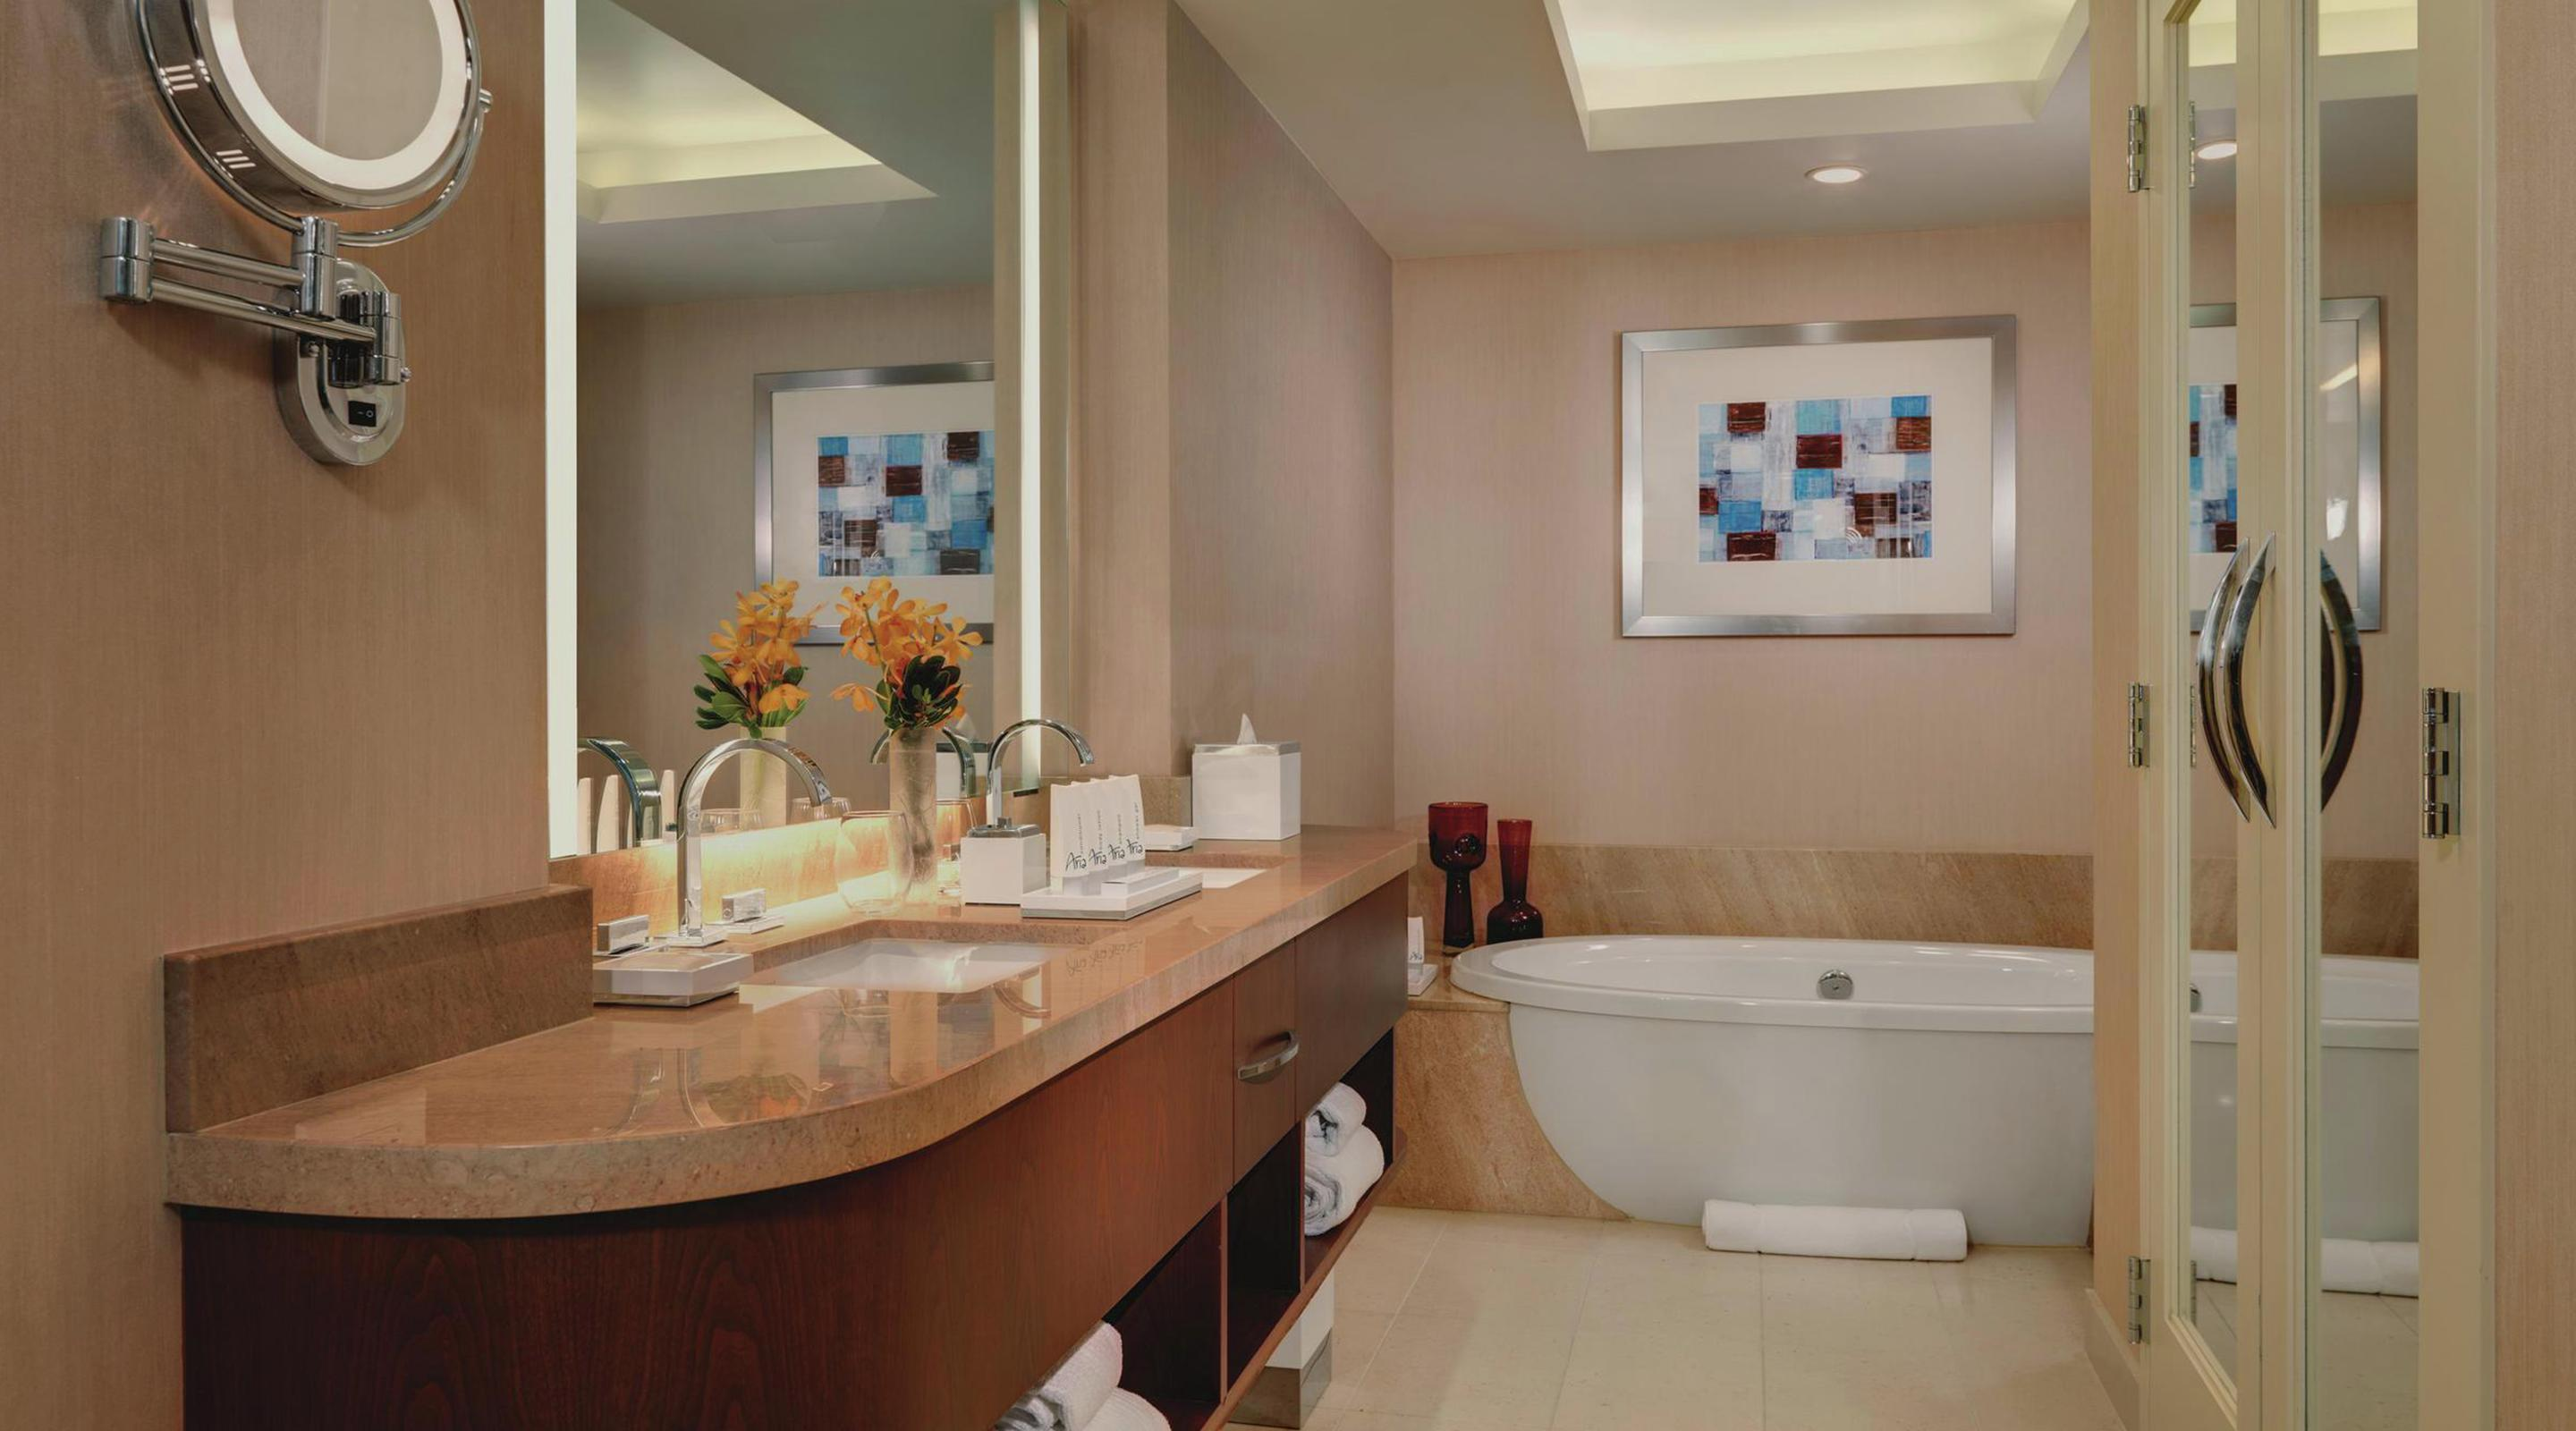 The rooms at ARIA have quickly become the new standard in Las Vegas hotel luxury, even the bathrooms.